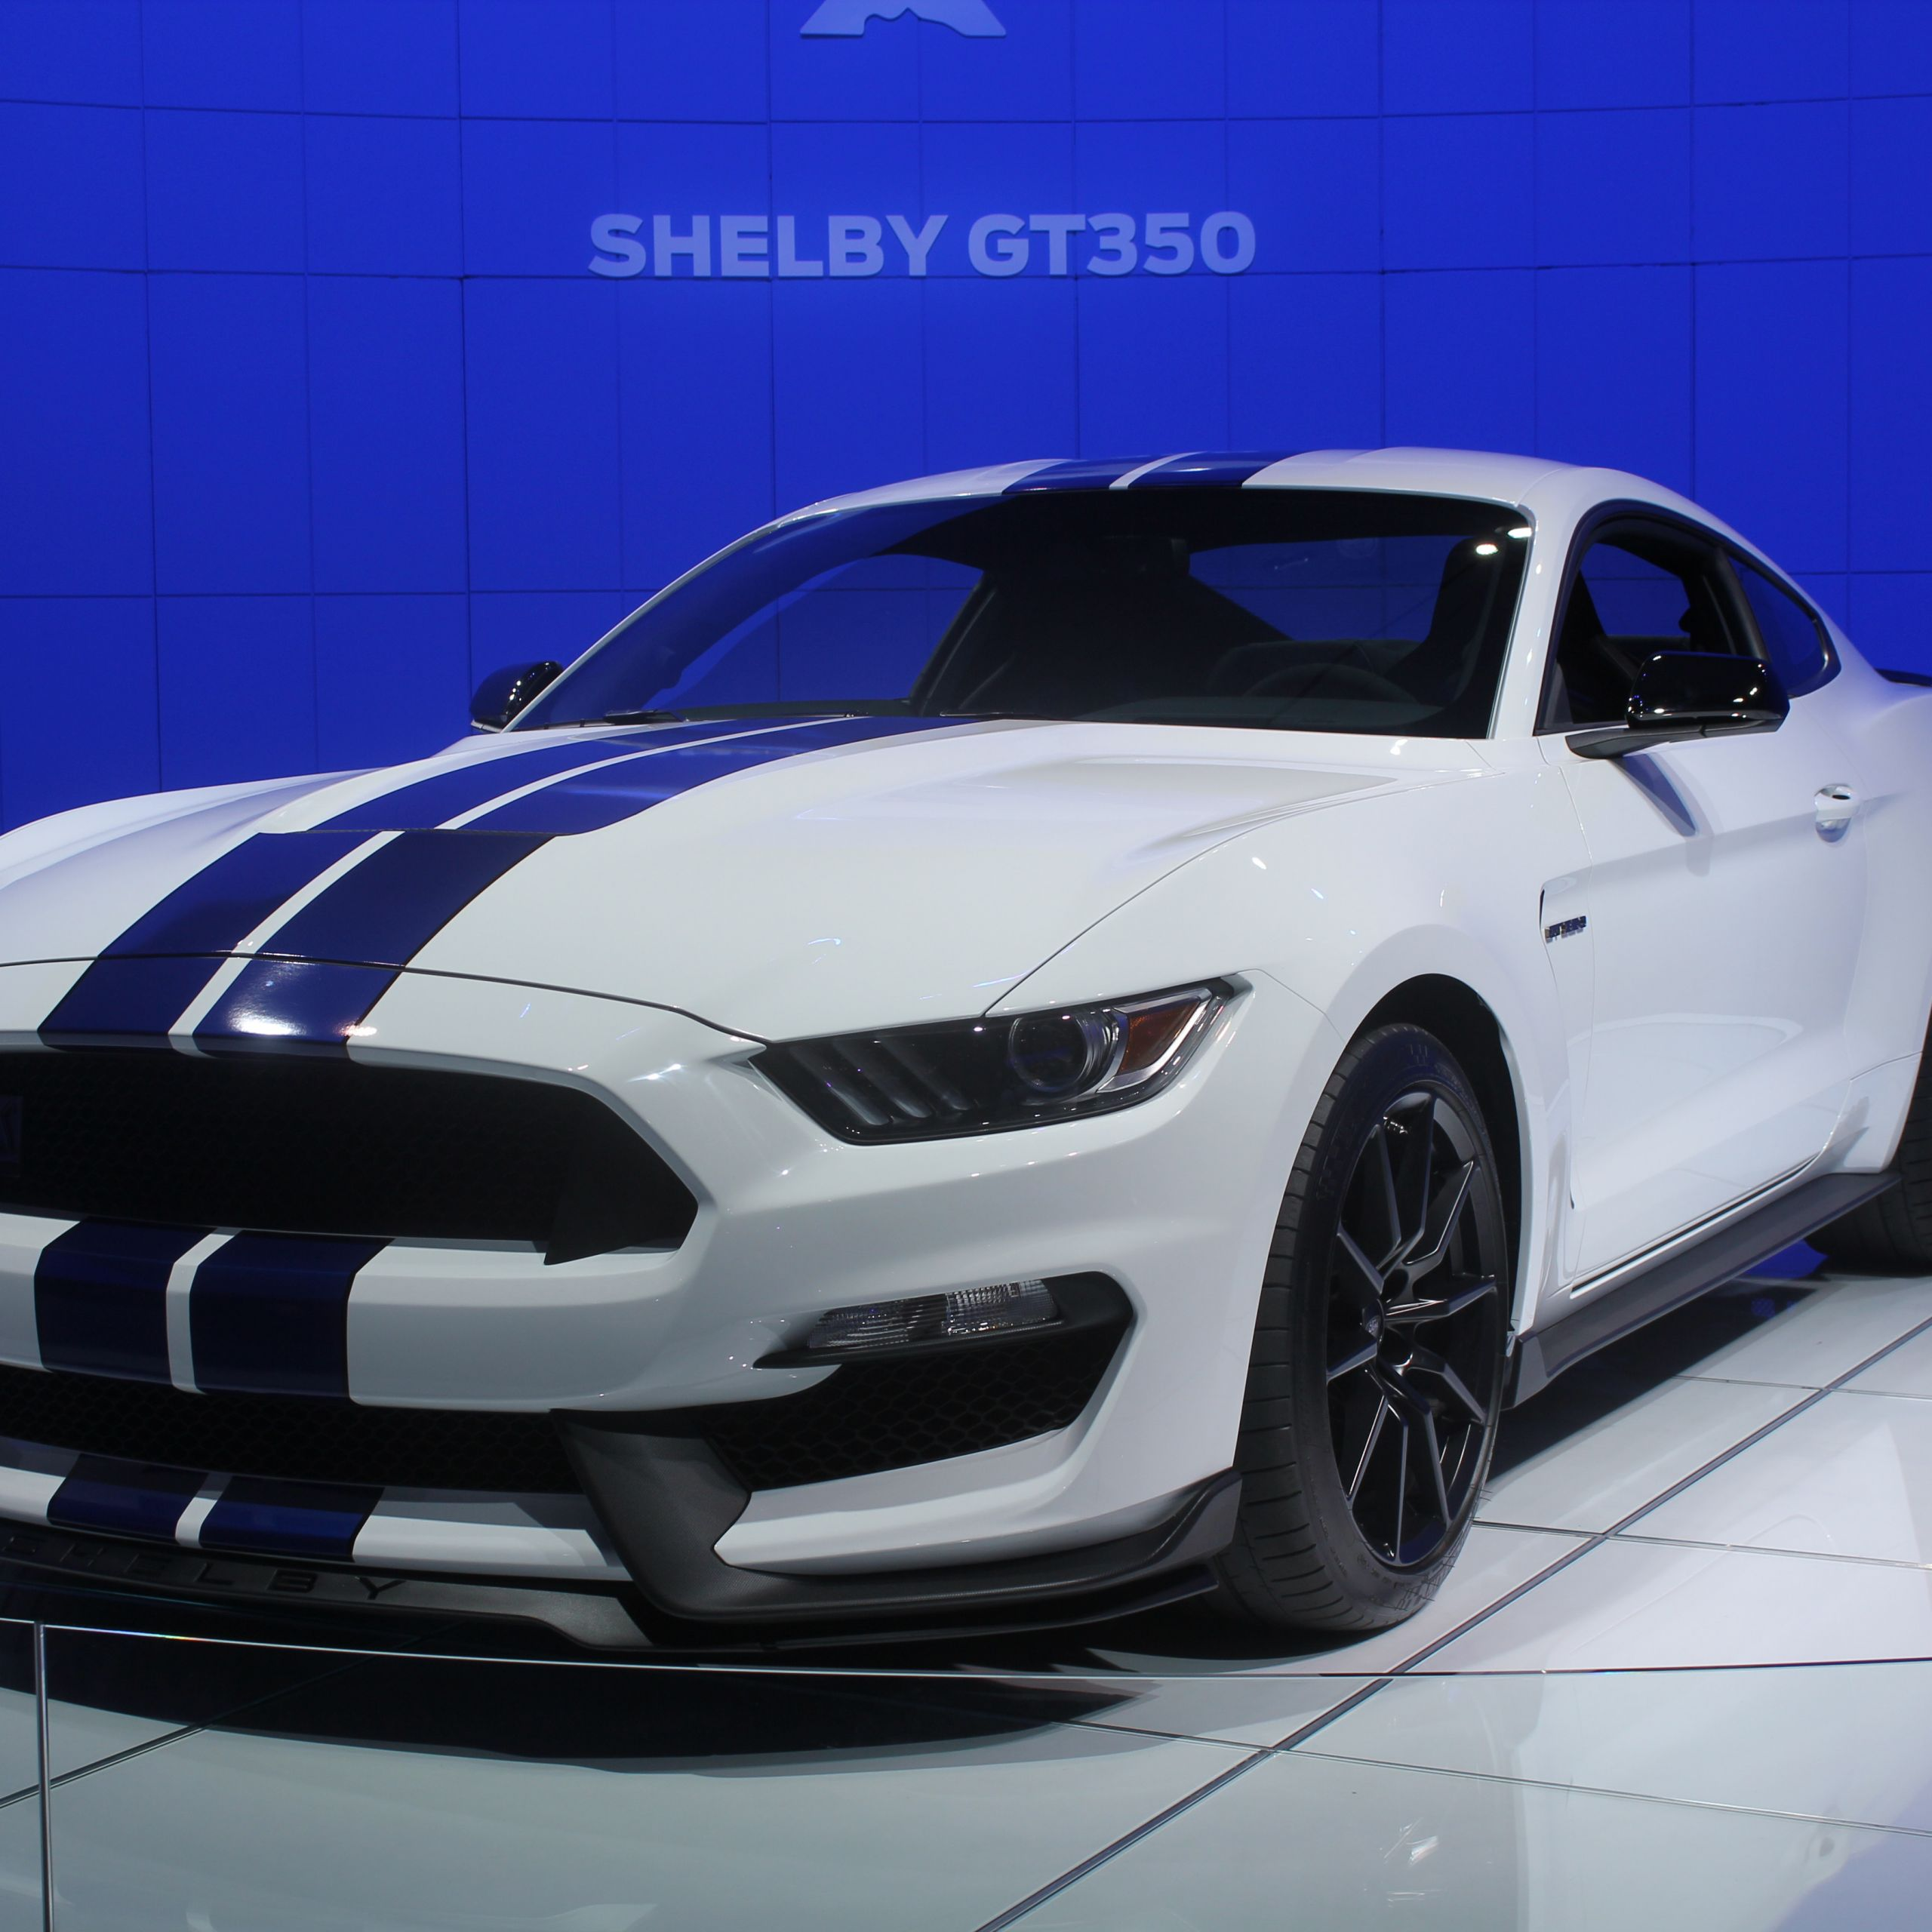 2016 Ford Mustang Shelby GT350 JPG